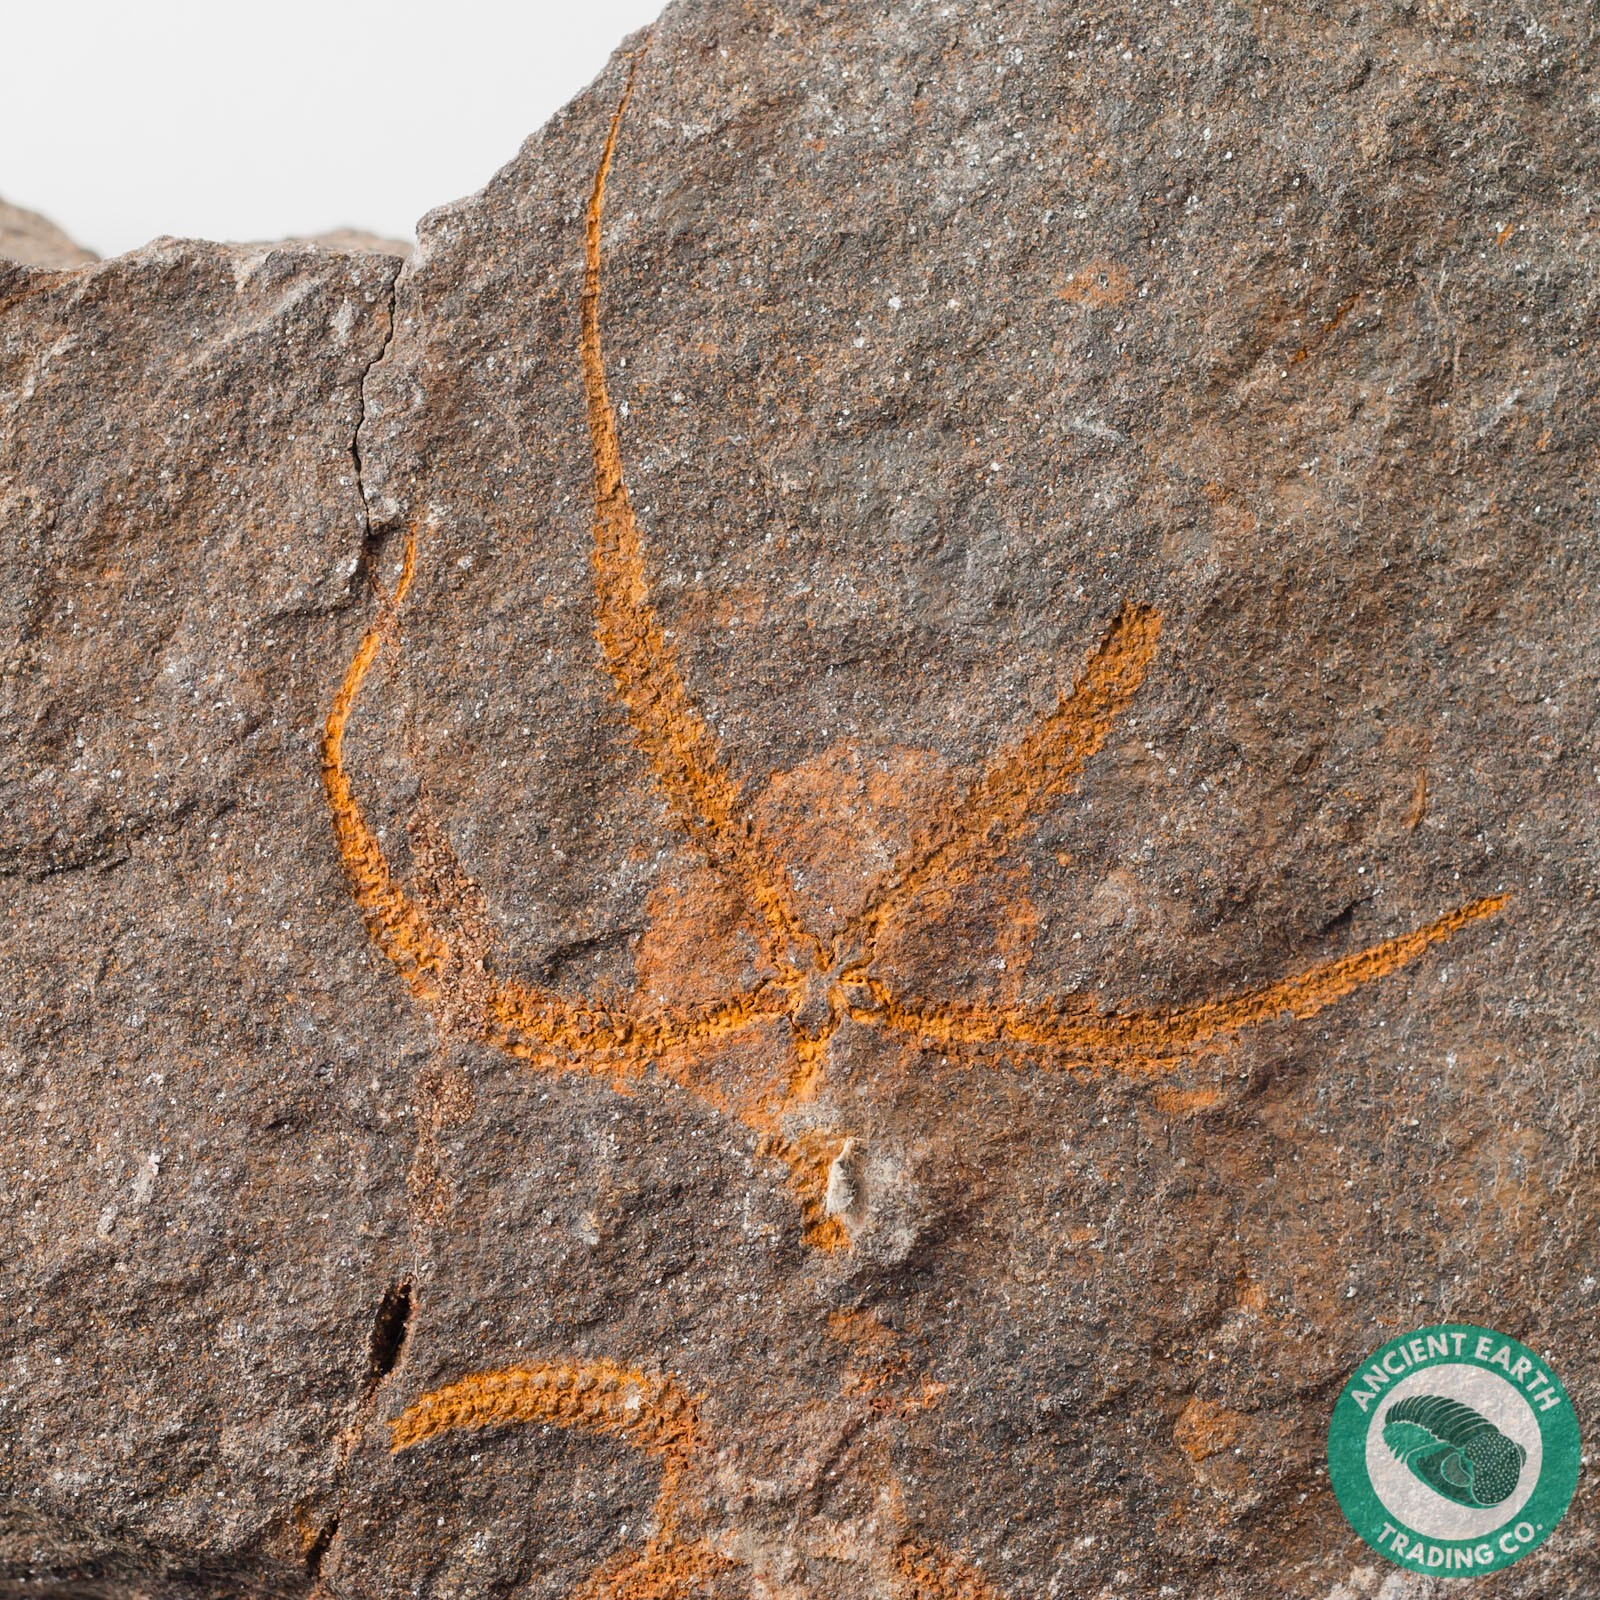 2.13 in. Brittle Star Starfish Fossil Protaster - Morocco